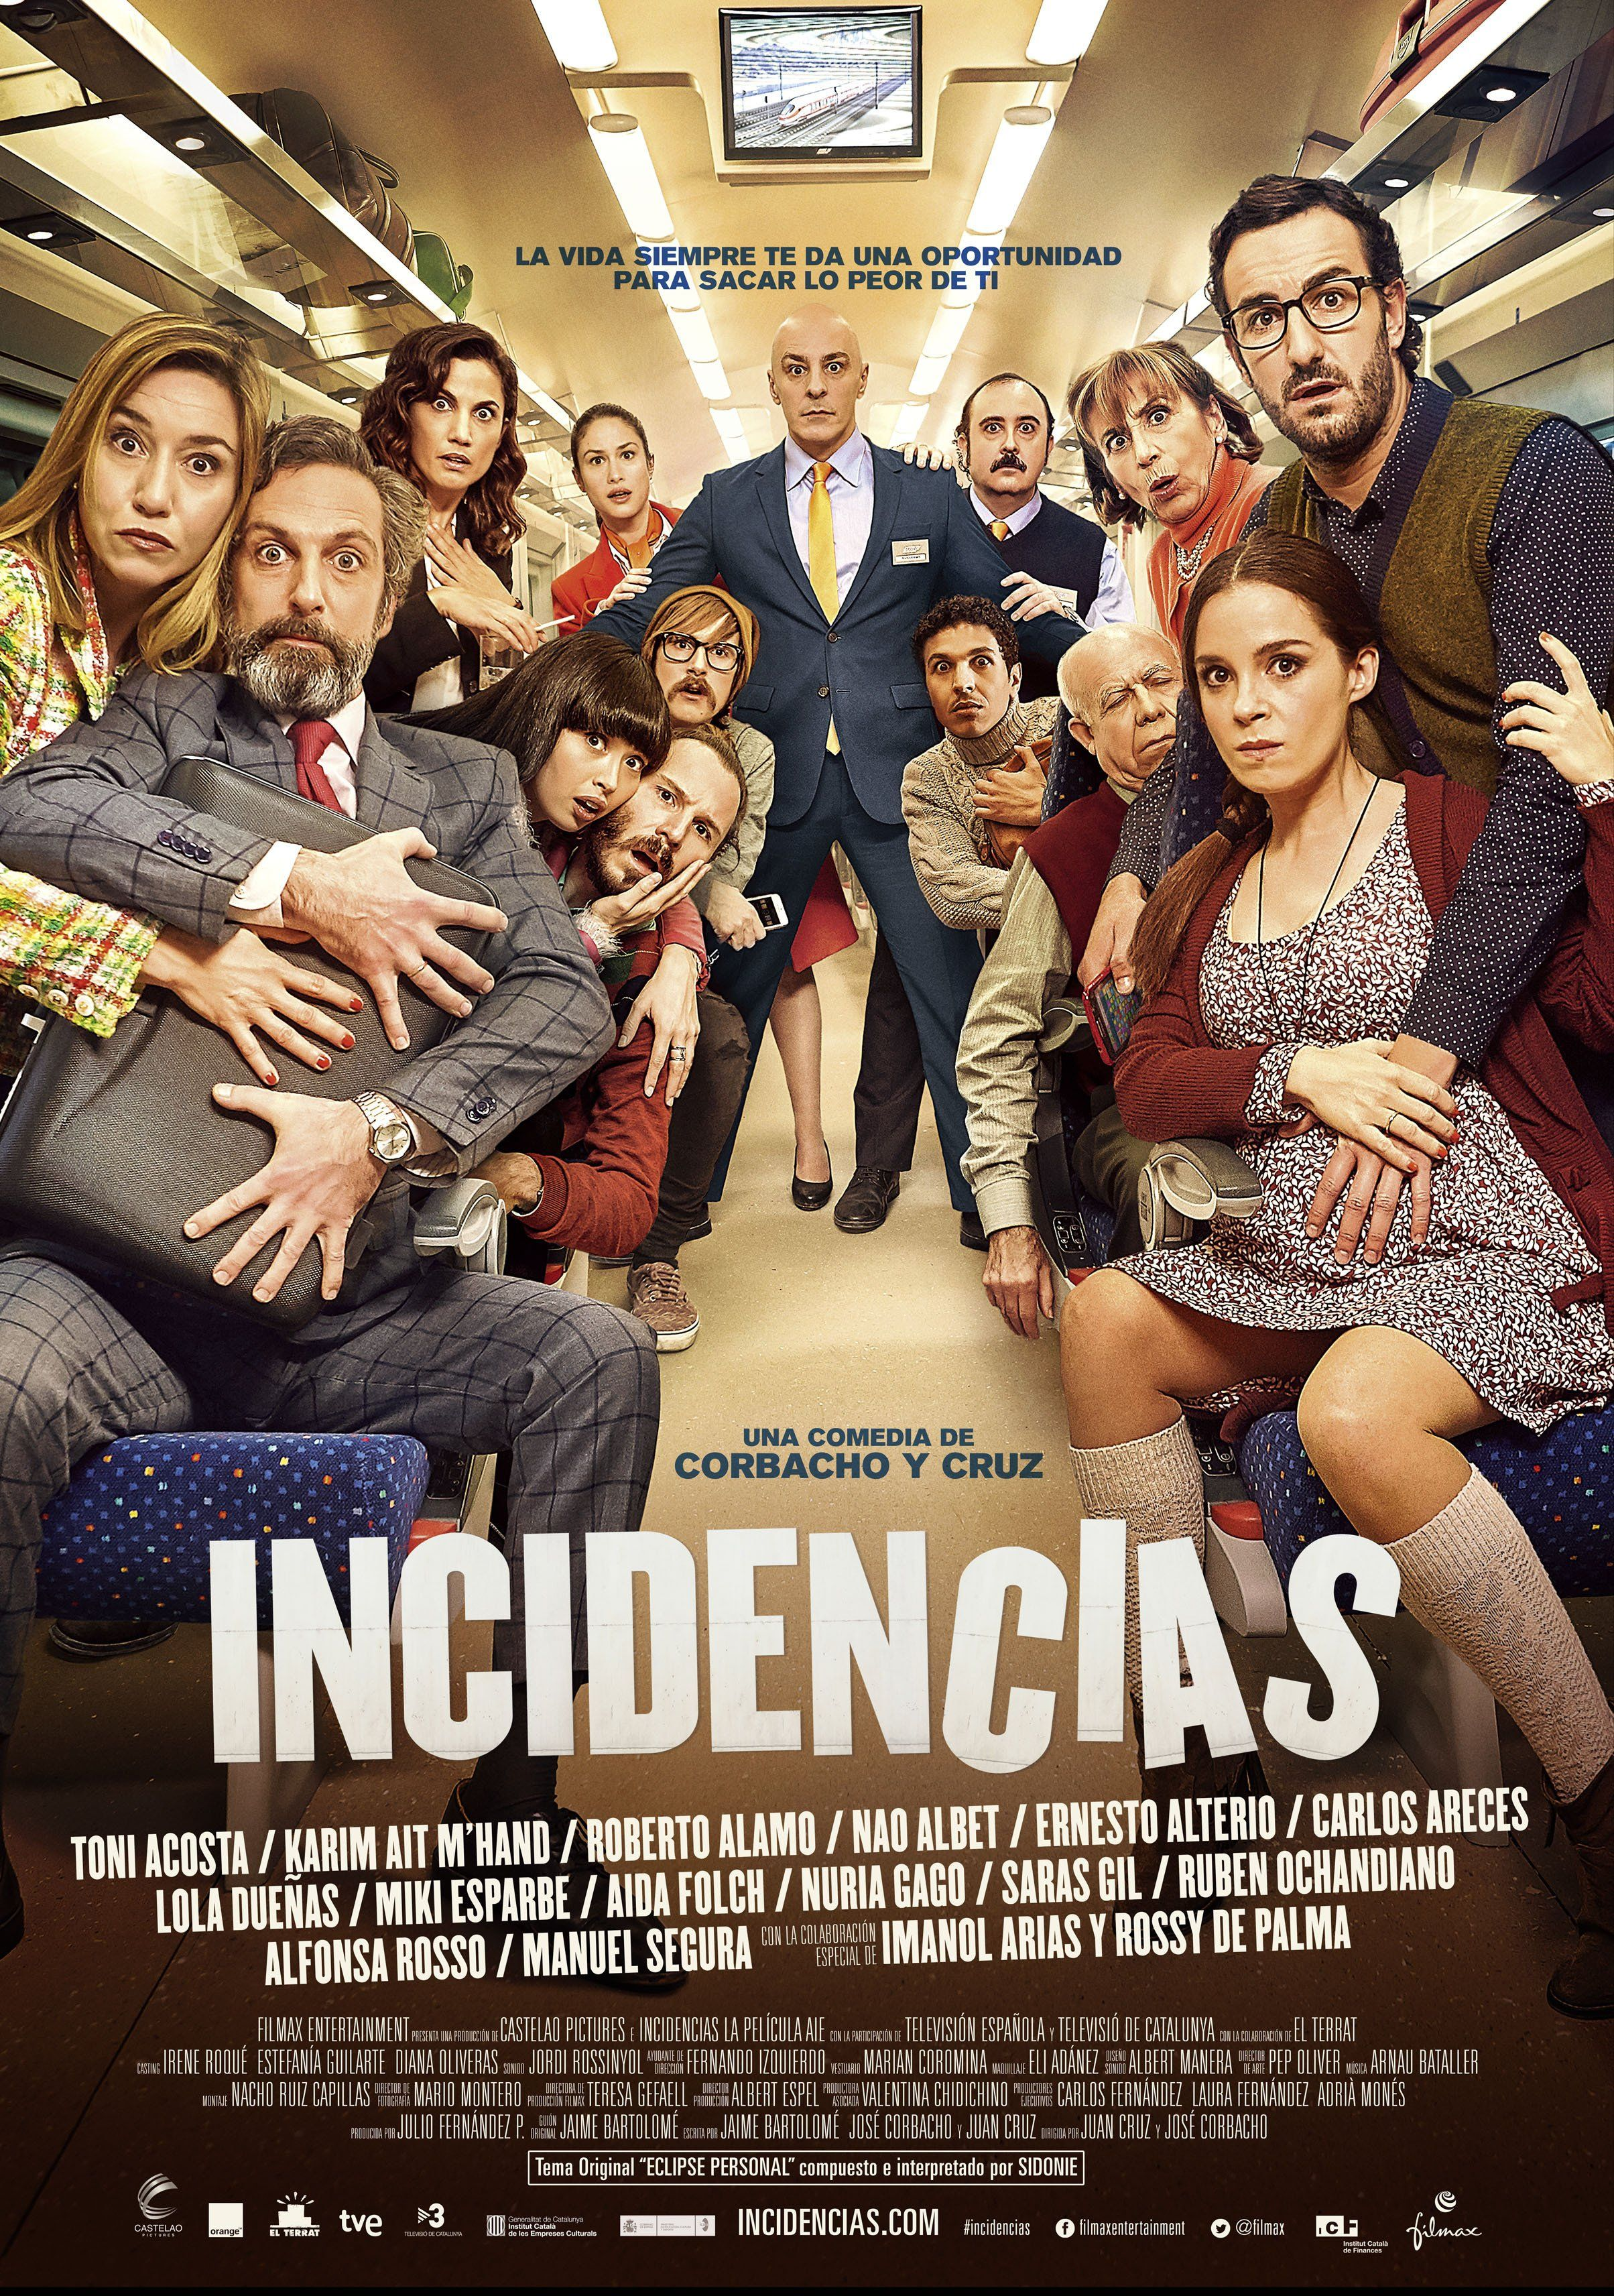 Incidencias (2015) Free movies online, Movies online